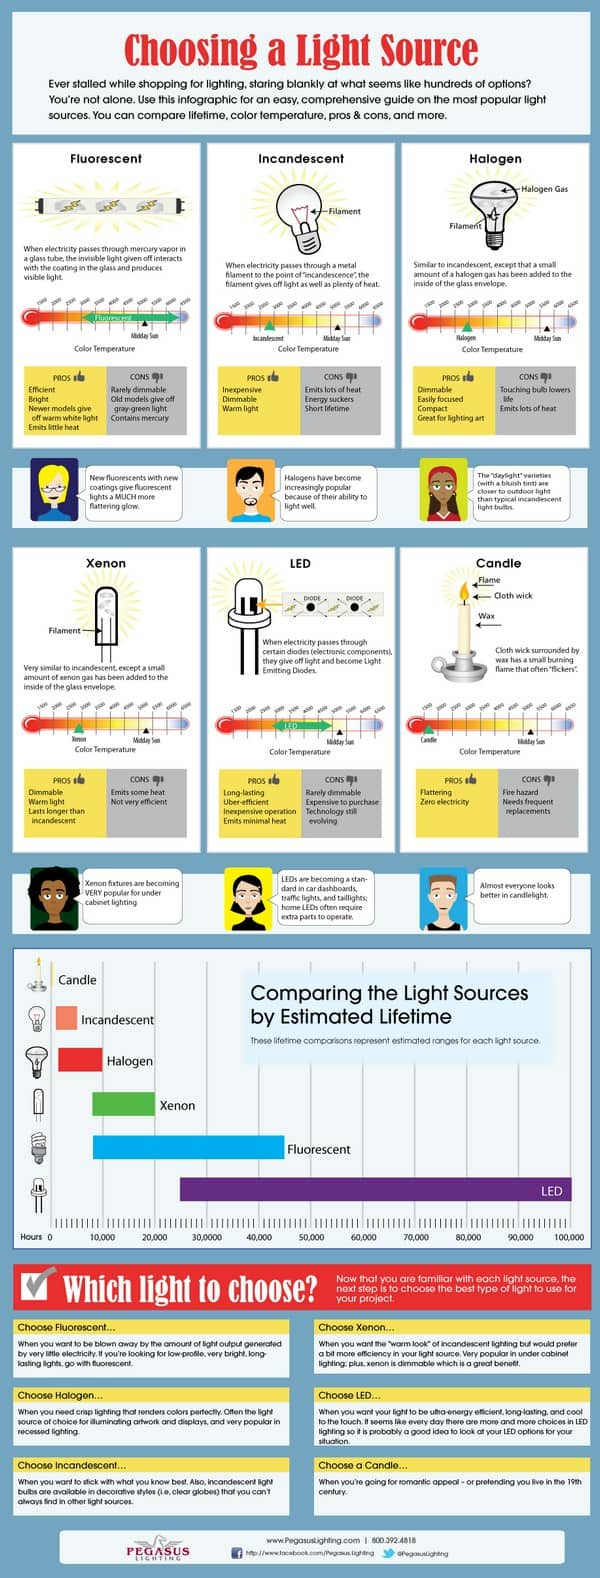 compare light sources ifographic